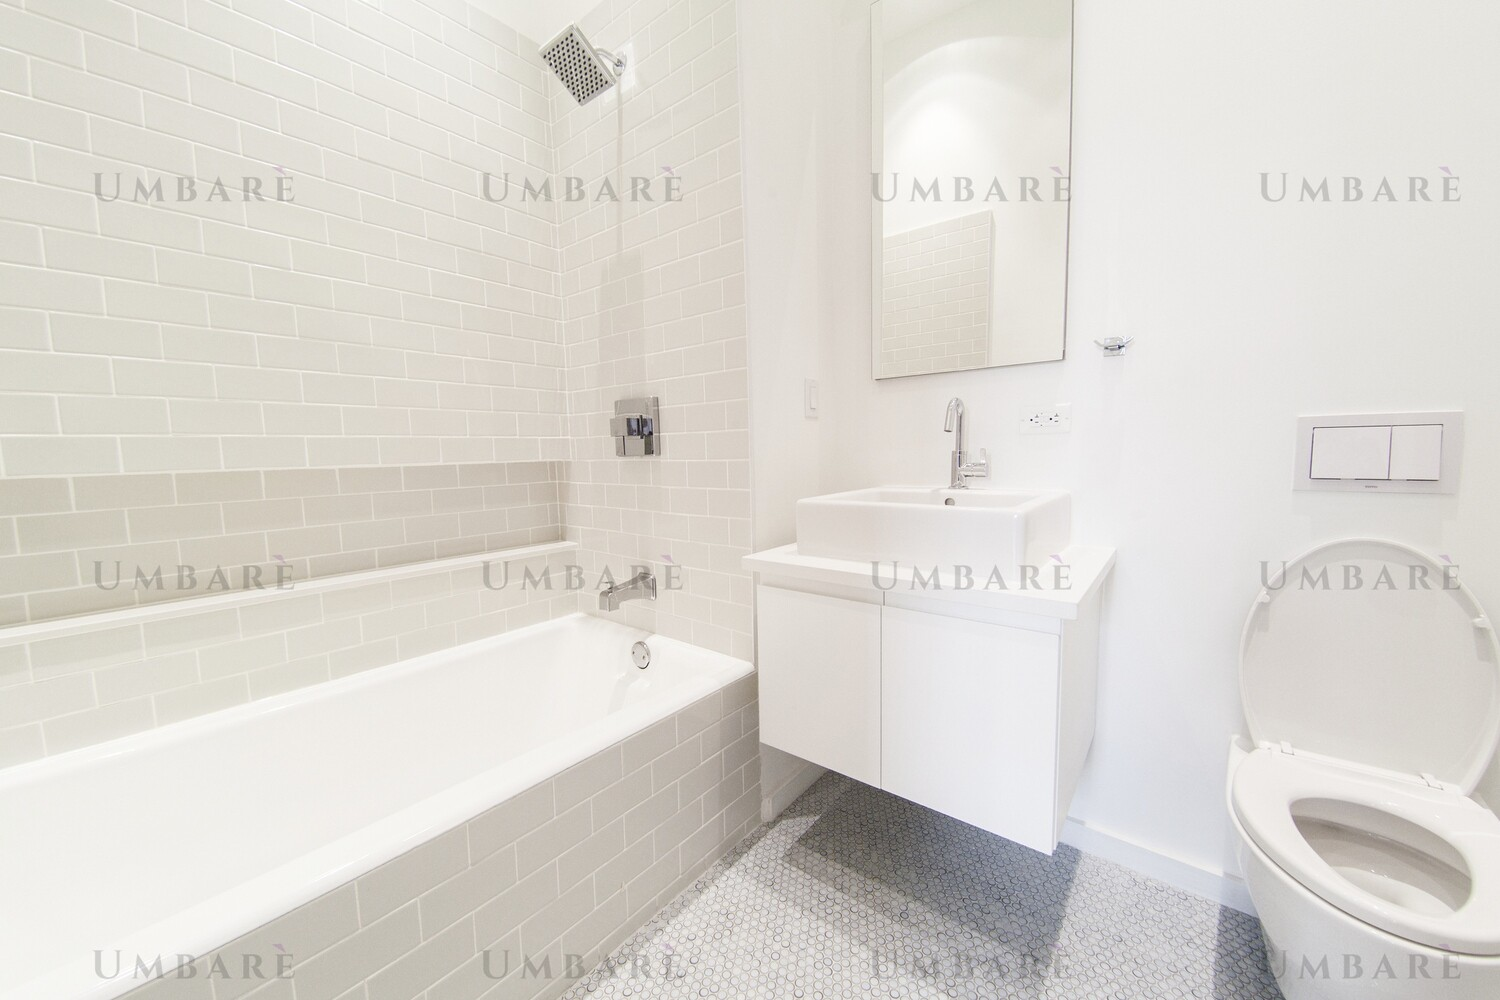 Bath Surround Tiled Walls, with New Showerhead and Controls